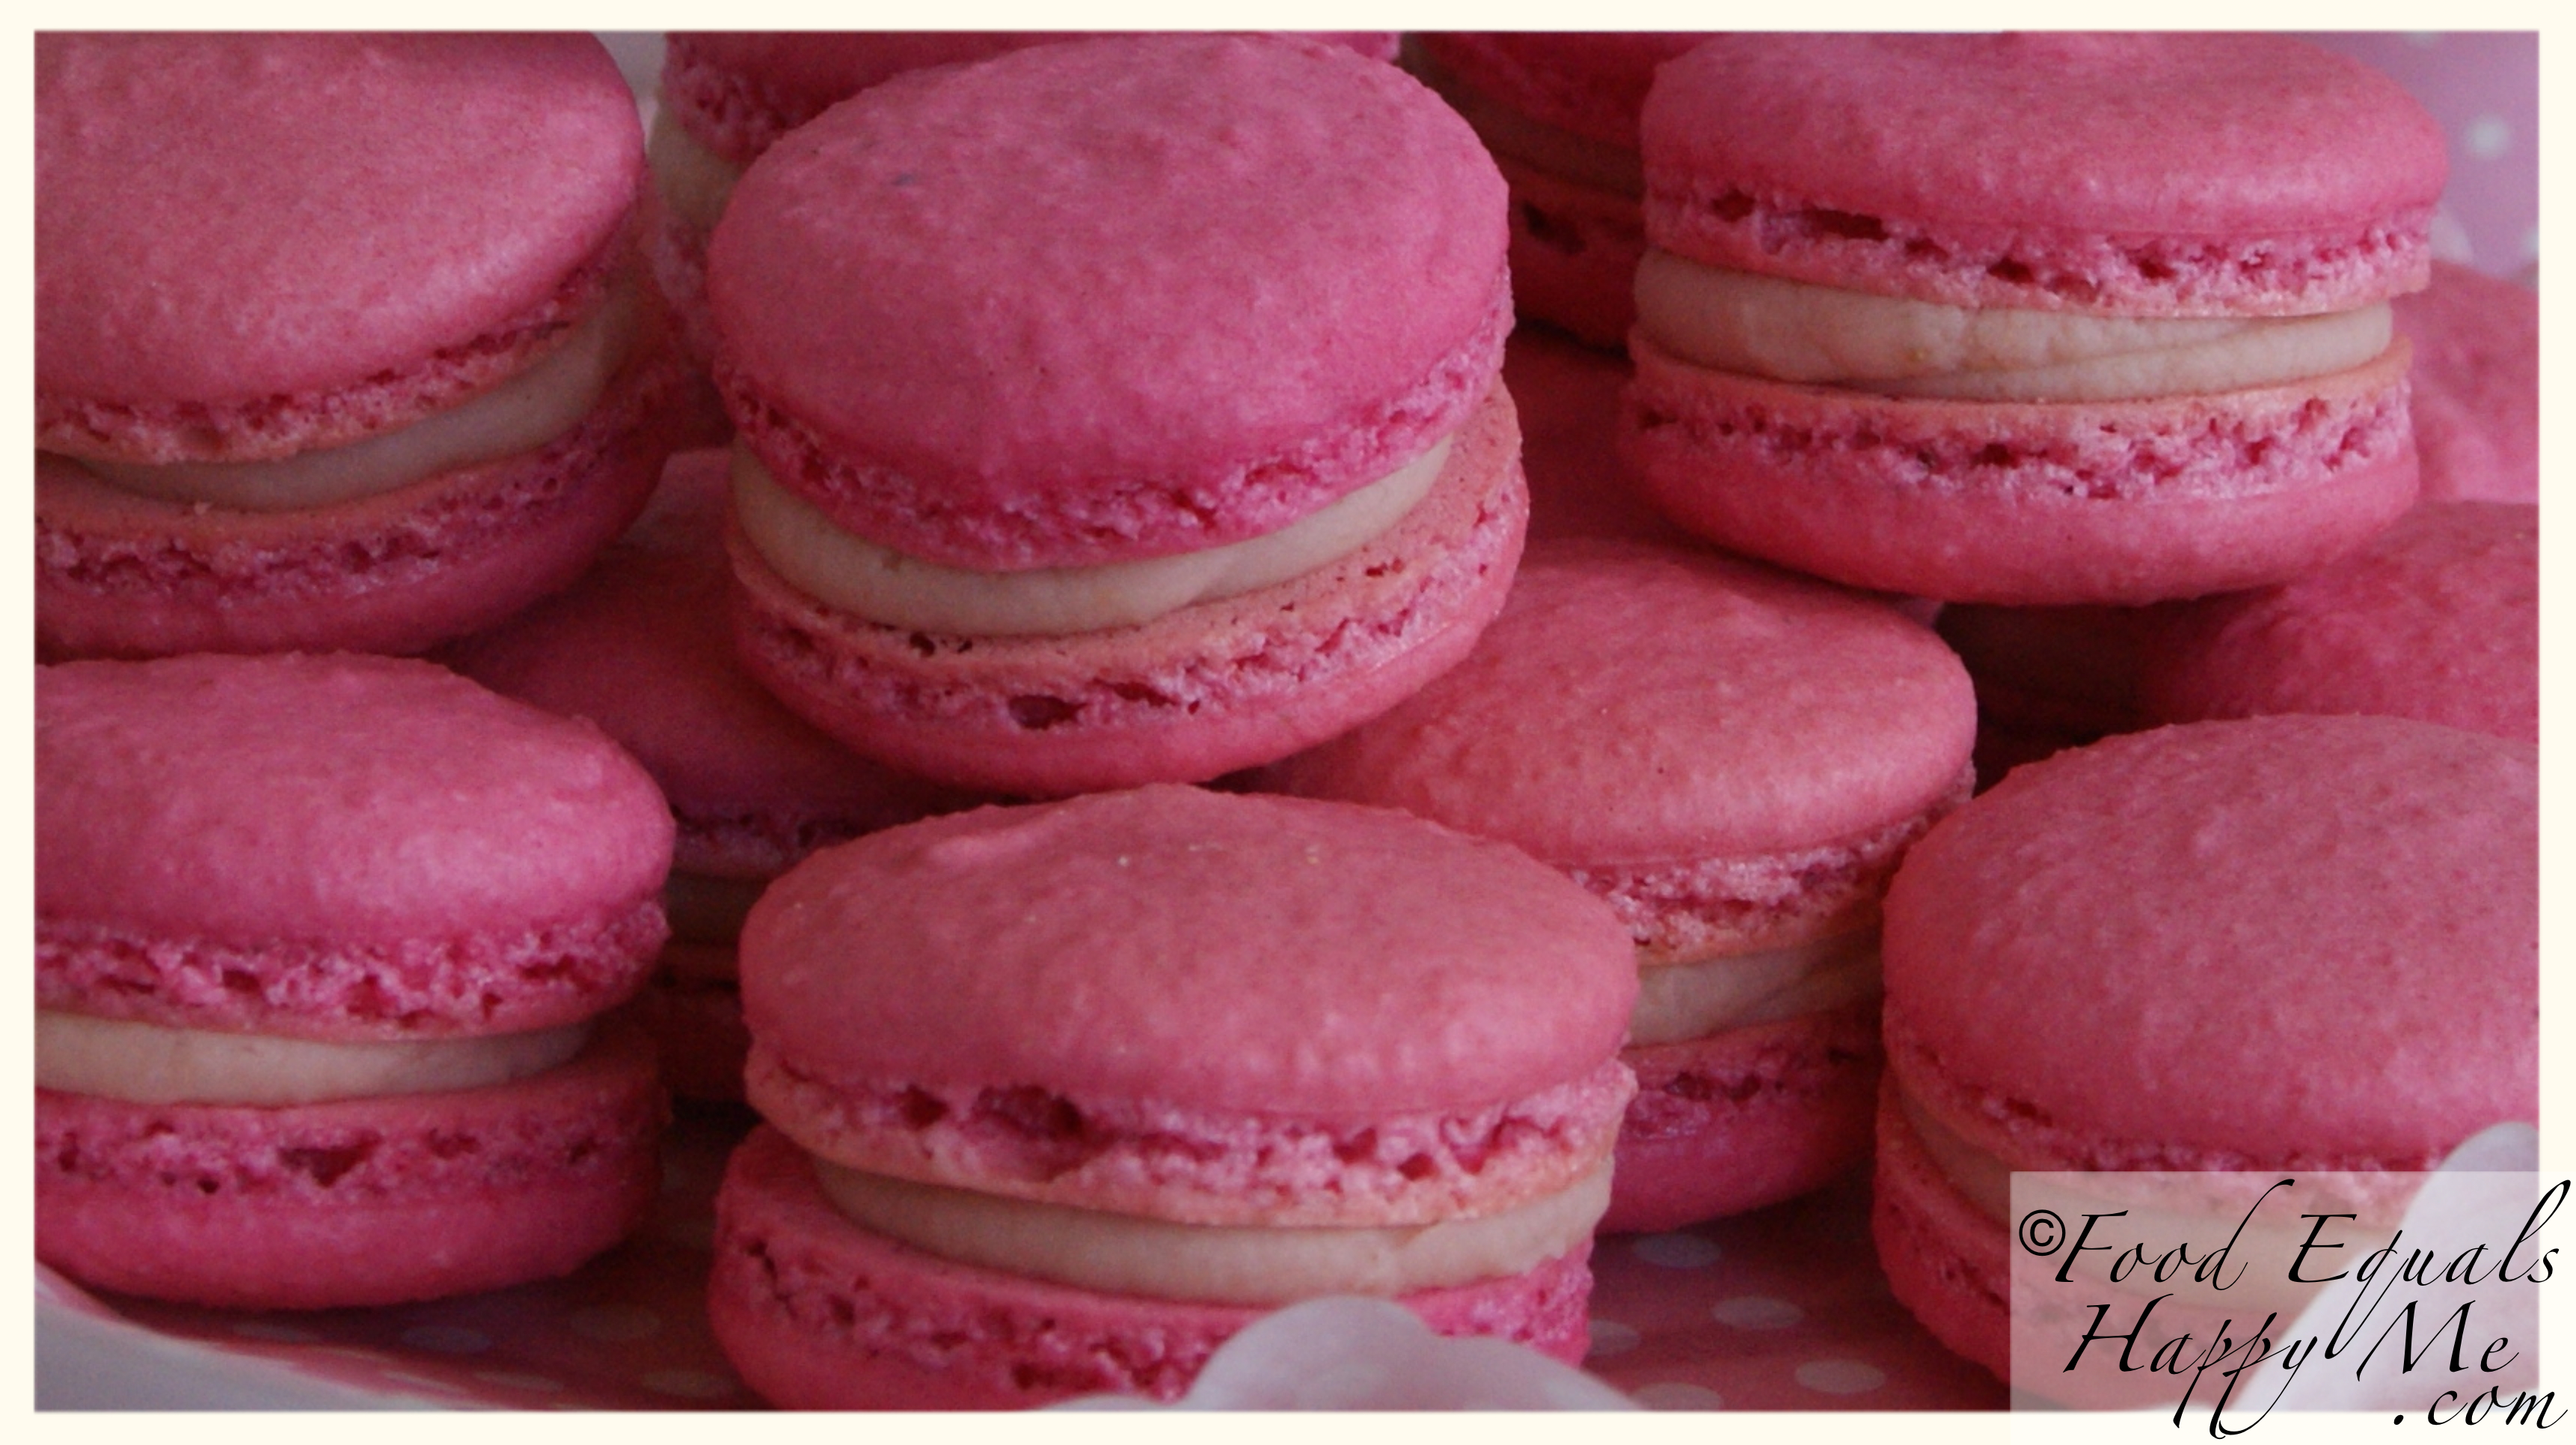 Strawberry Macarons | Food Equals Happy Me